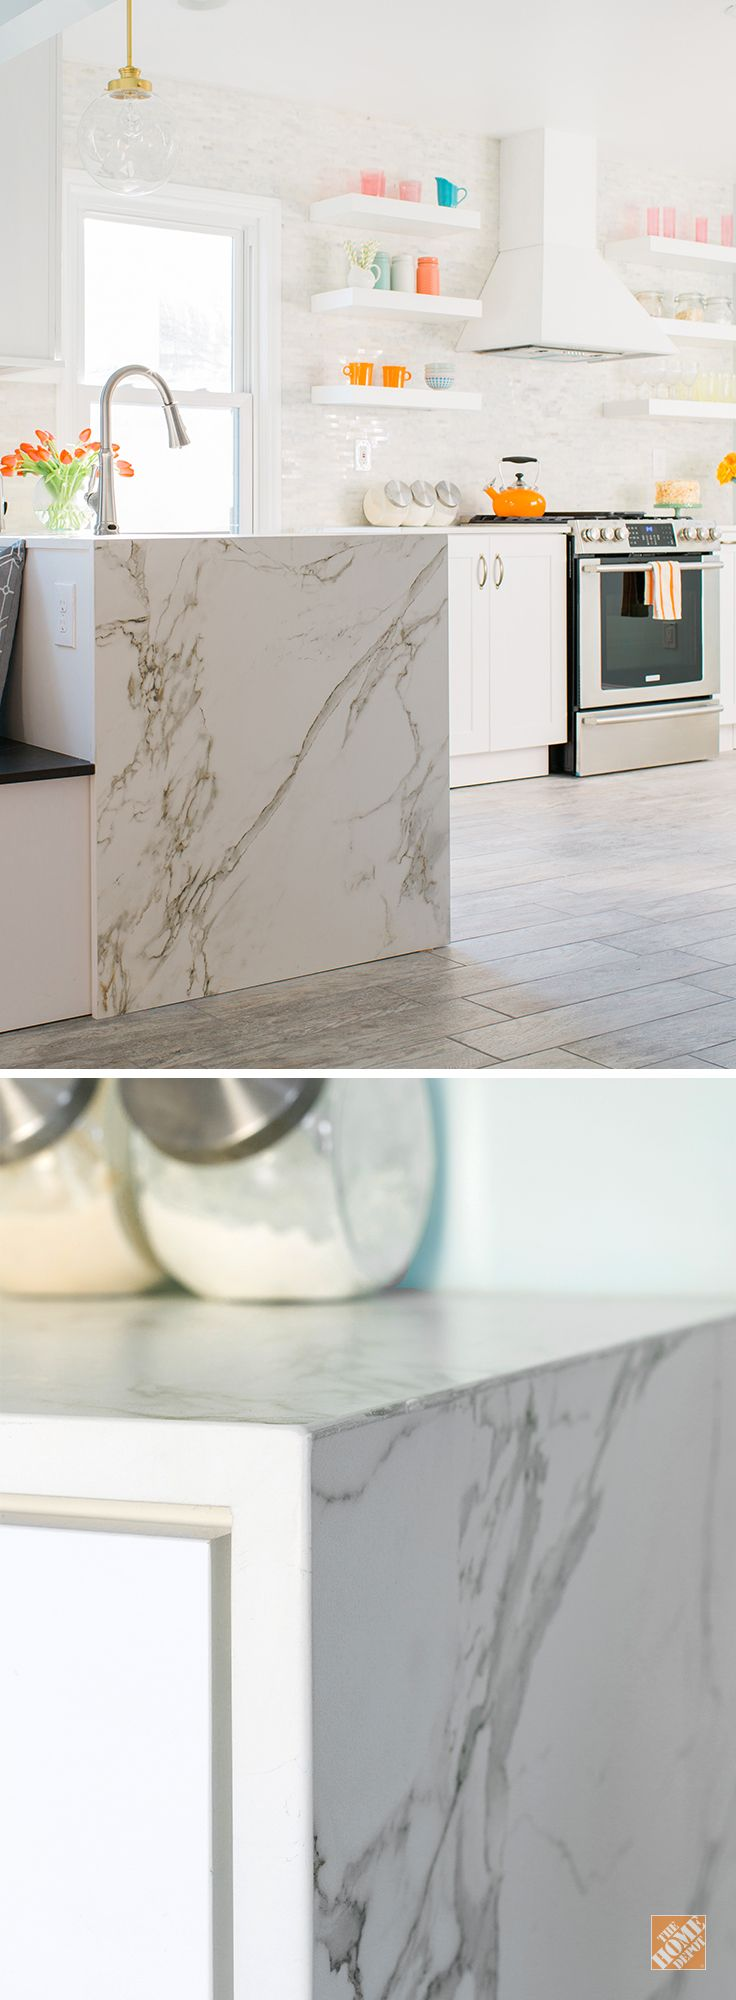 This Waterfall Edge Countertop Looks Like On Trend